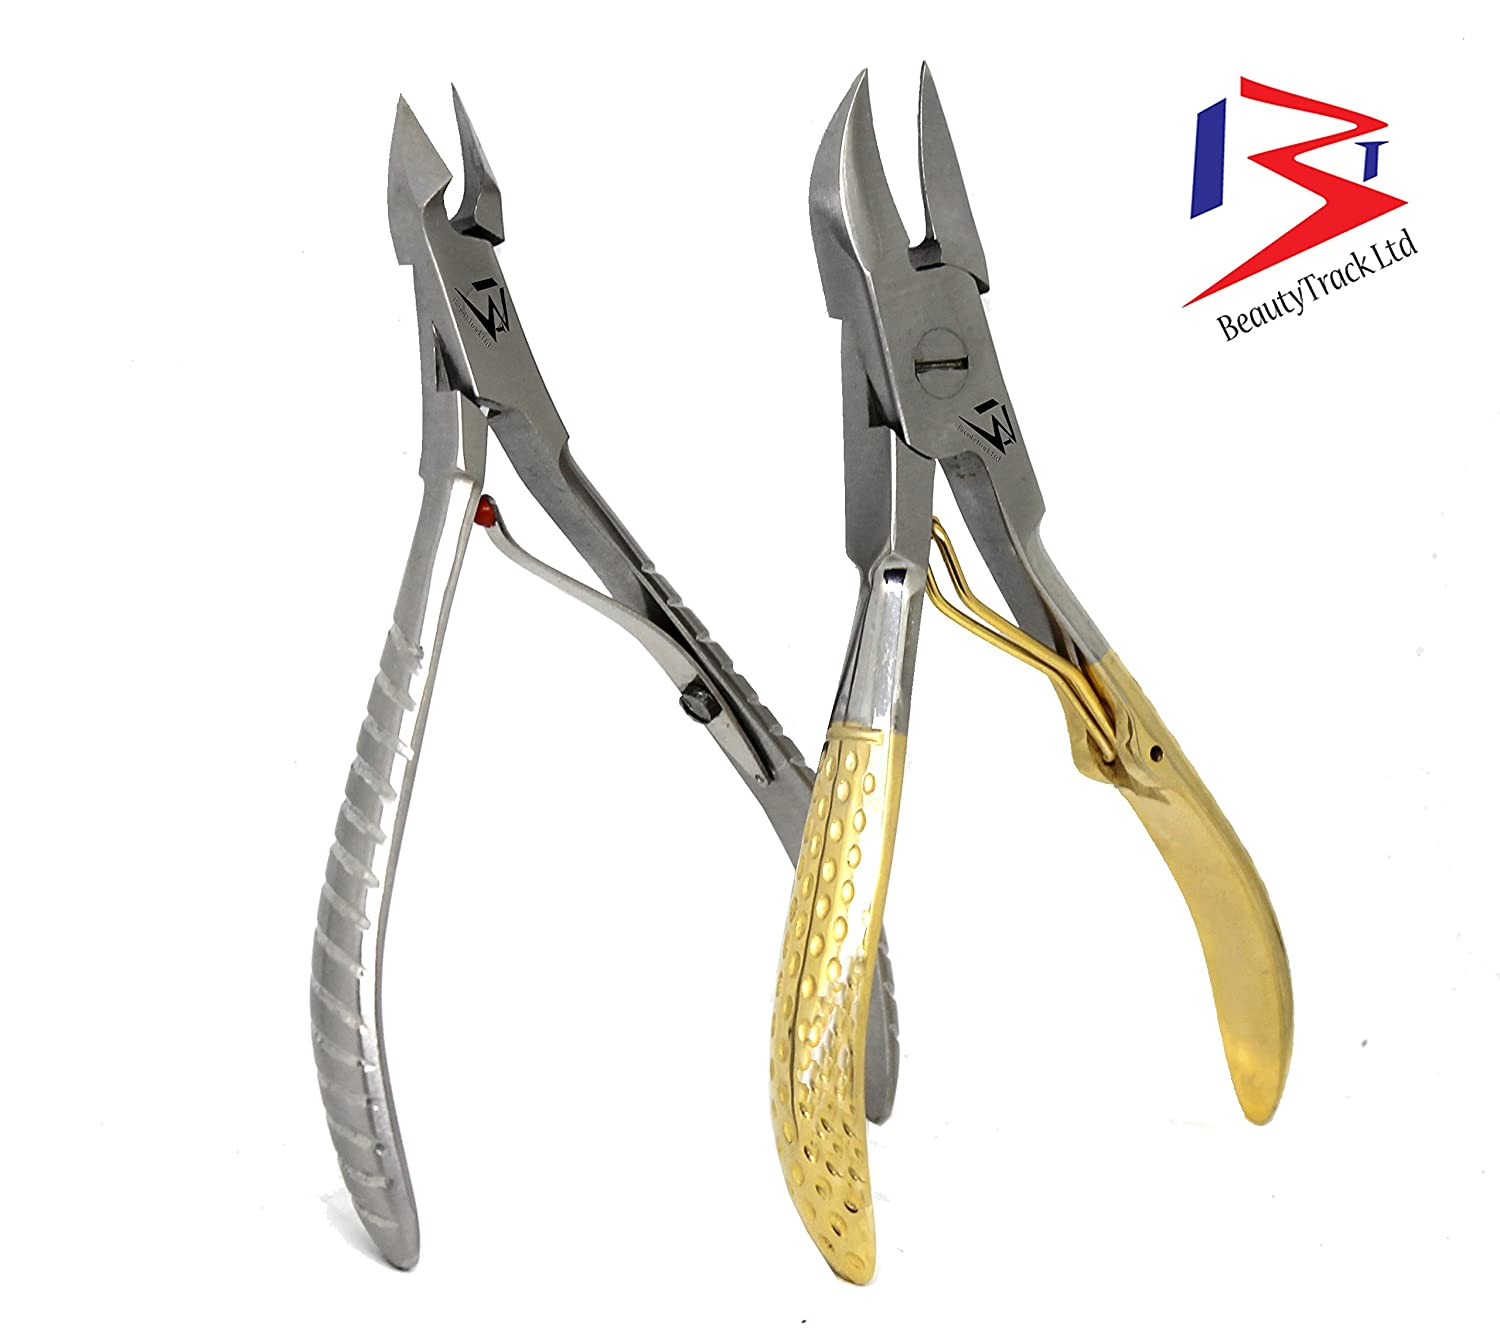 BeautyTrack Professional Ingrowing Toenail Clippers Cutter - Fast Pain Relief, Manicure Pedicure Instruments - Thick toenail cutter set - Cuticle nail nipper - Nail Cutter Gold handle